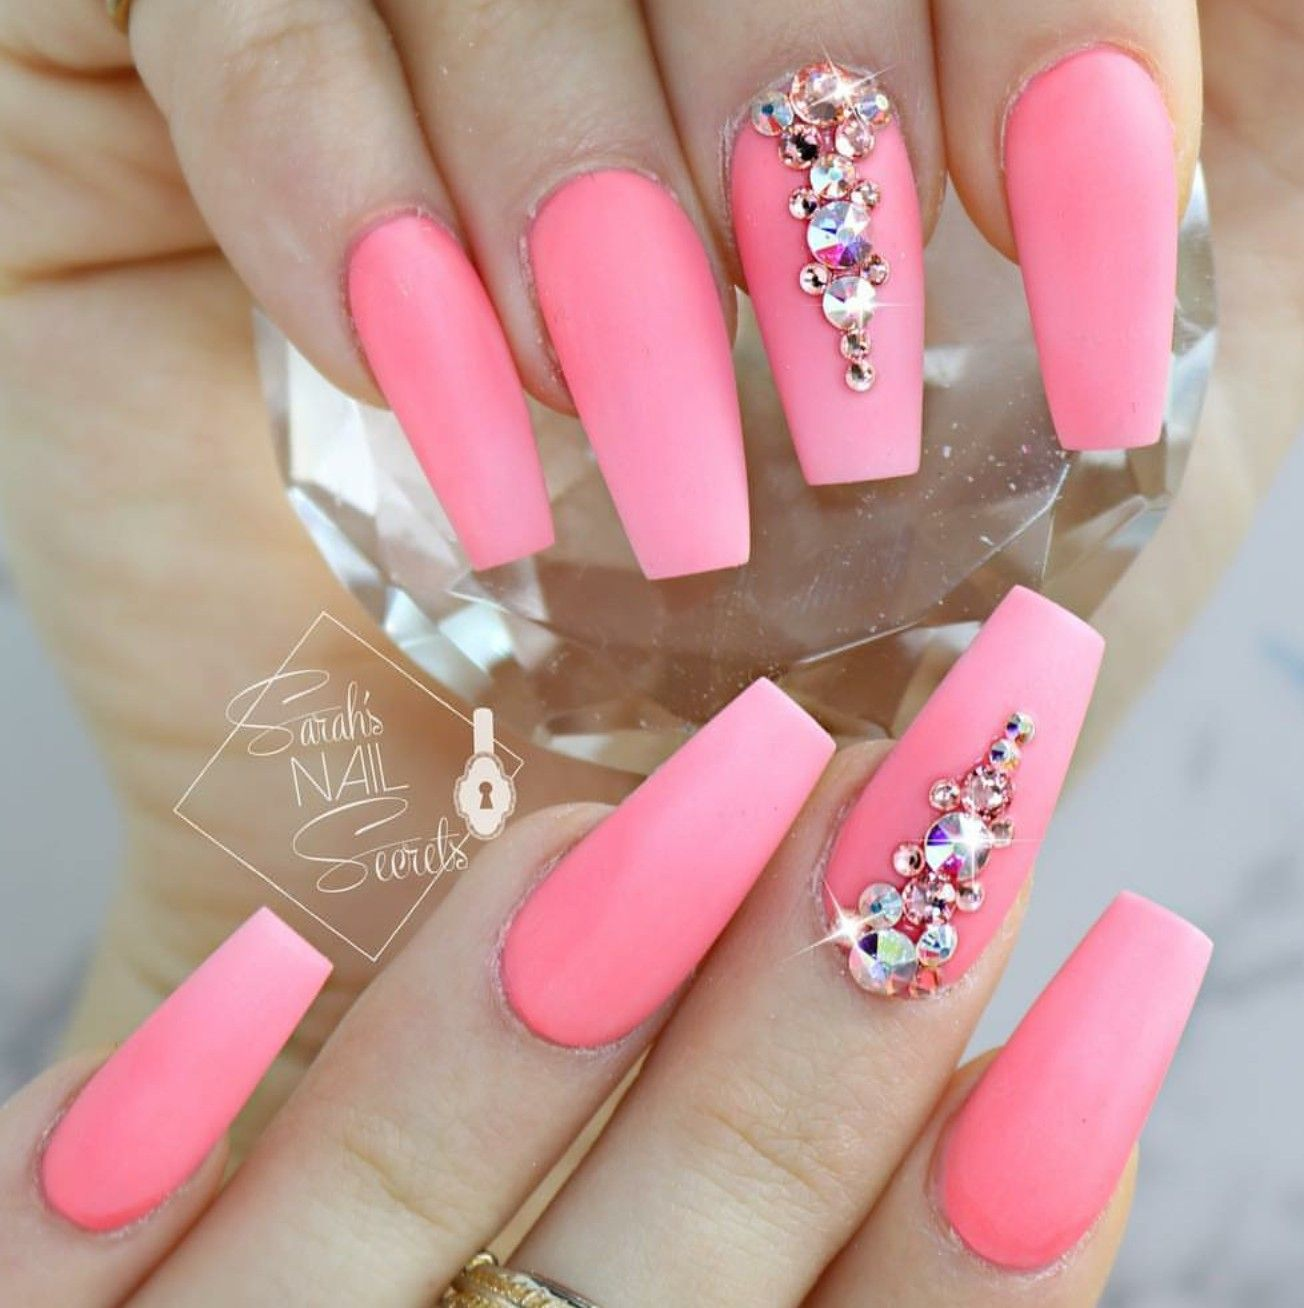 Tapered Square Nails Nails With Rhinestones Matte Nails Summer Nails Rhinestone Nails Nail Designs Dream Nails